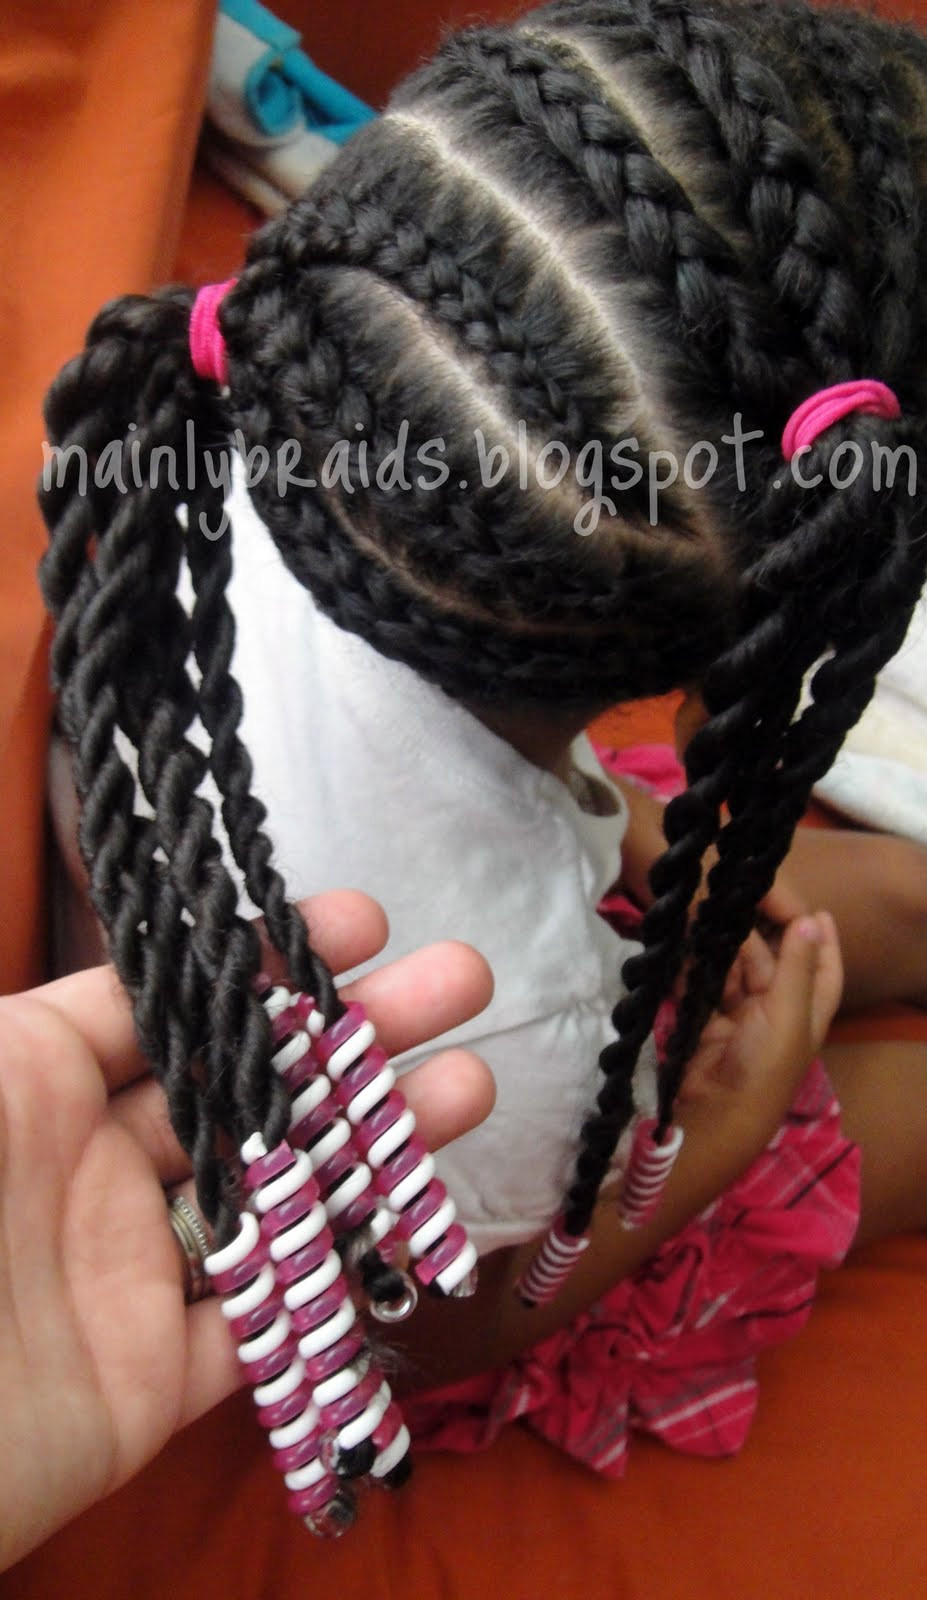 Best ideas about Big Braid Little Braid Hairstyles . Save or Pin mainly braids product review sidewinders Now.